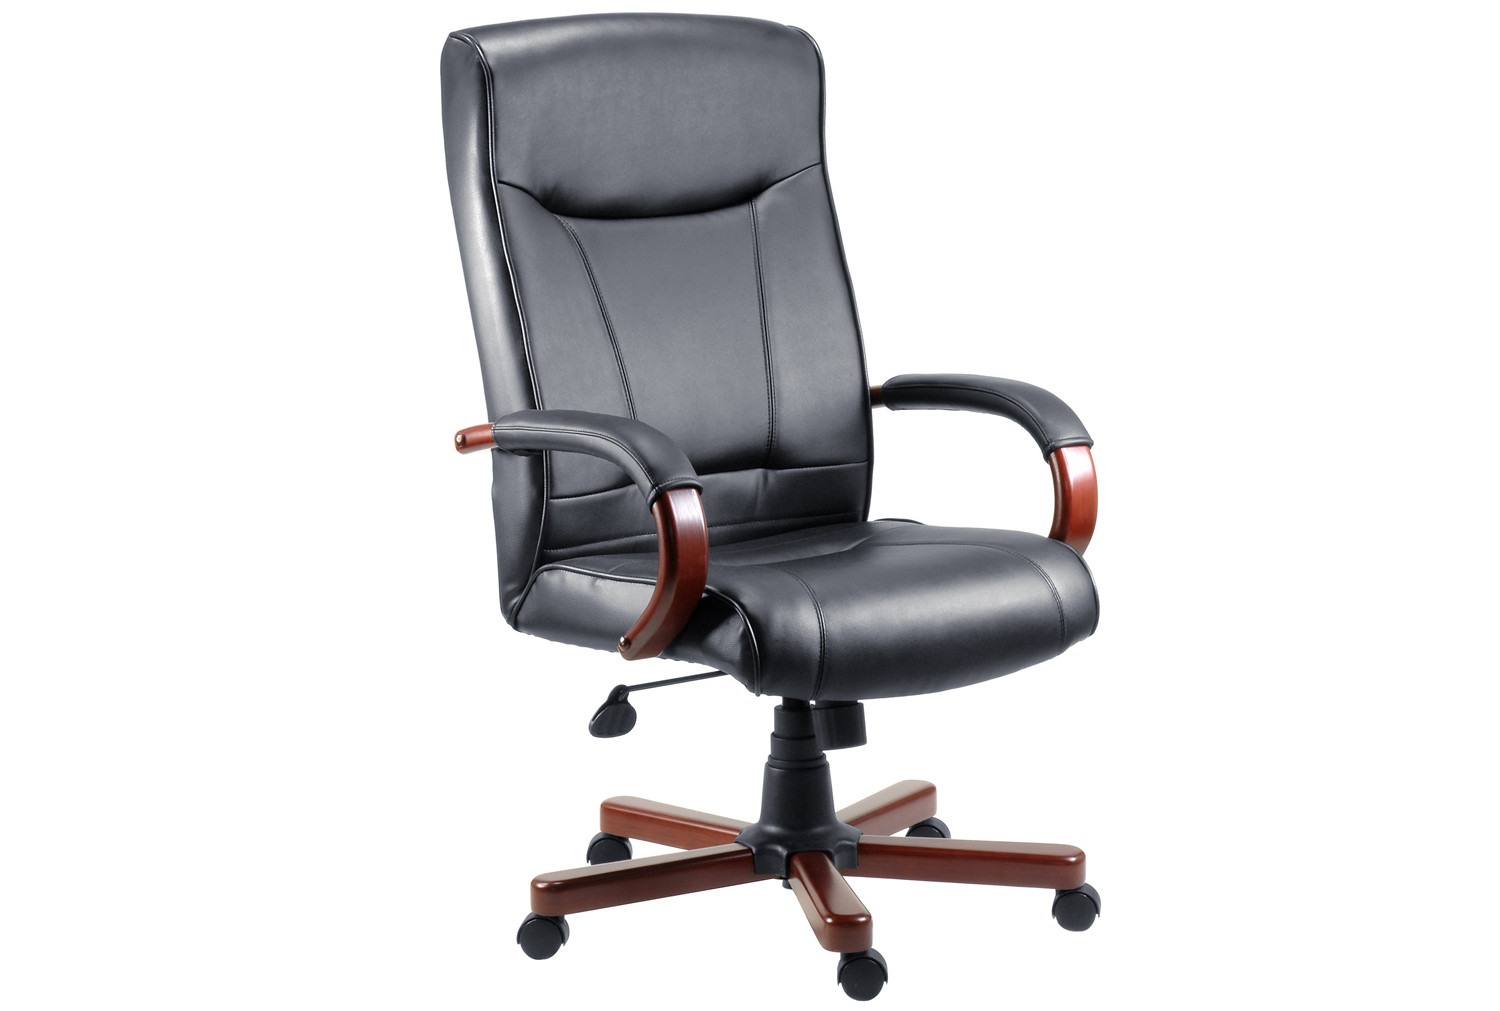 Knightsbridge executive chair mahogany/black